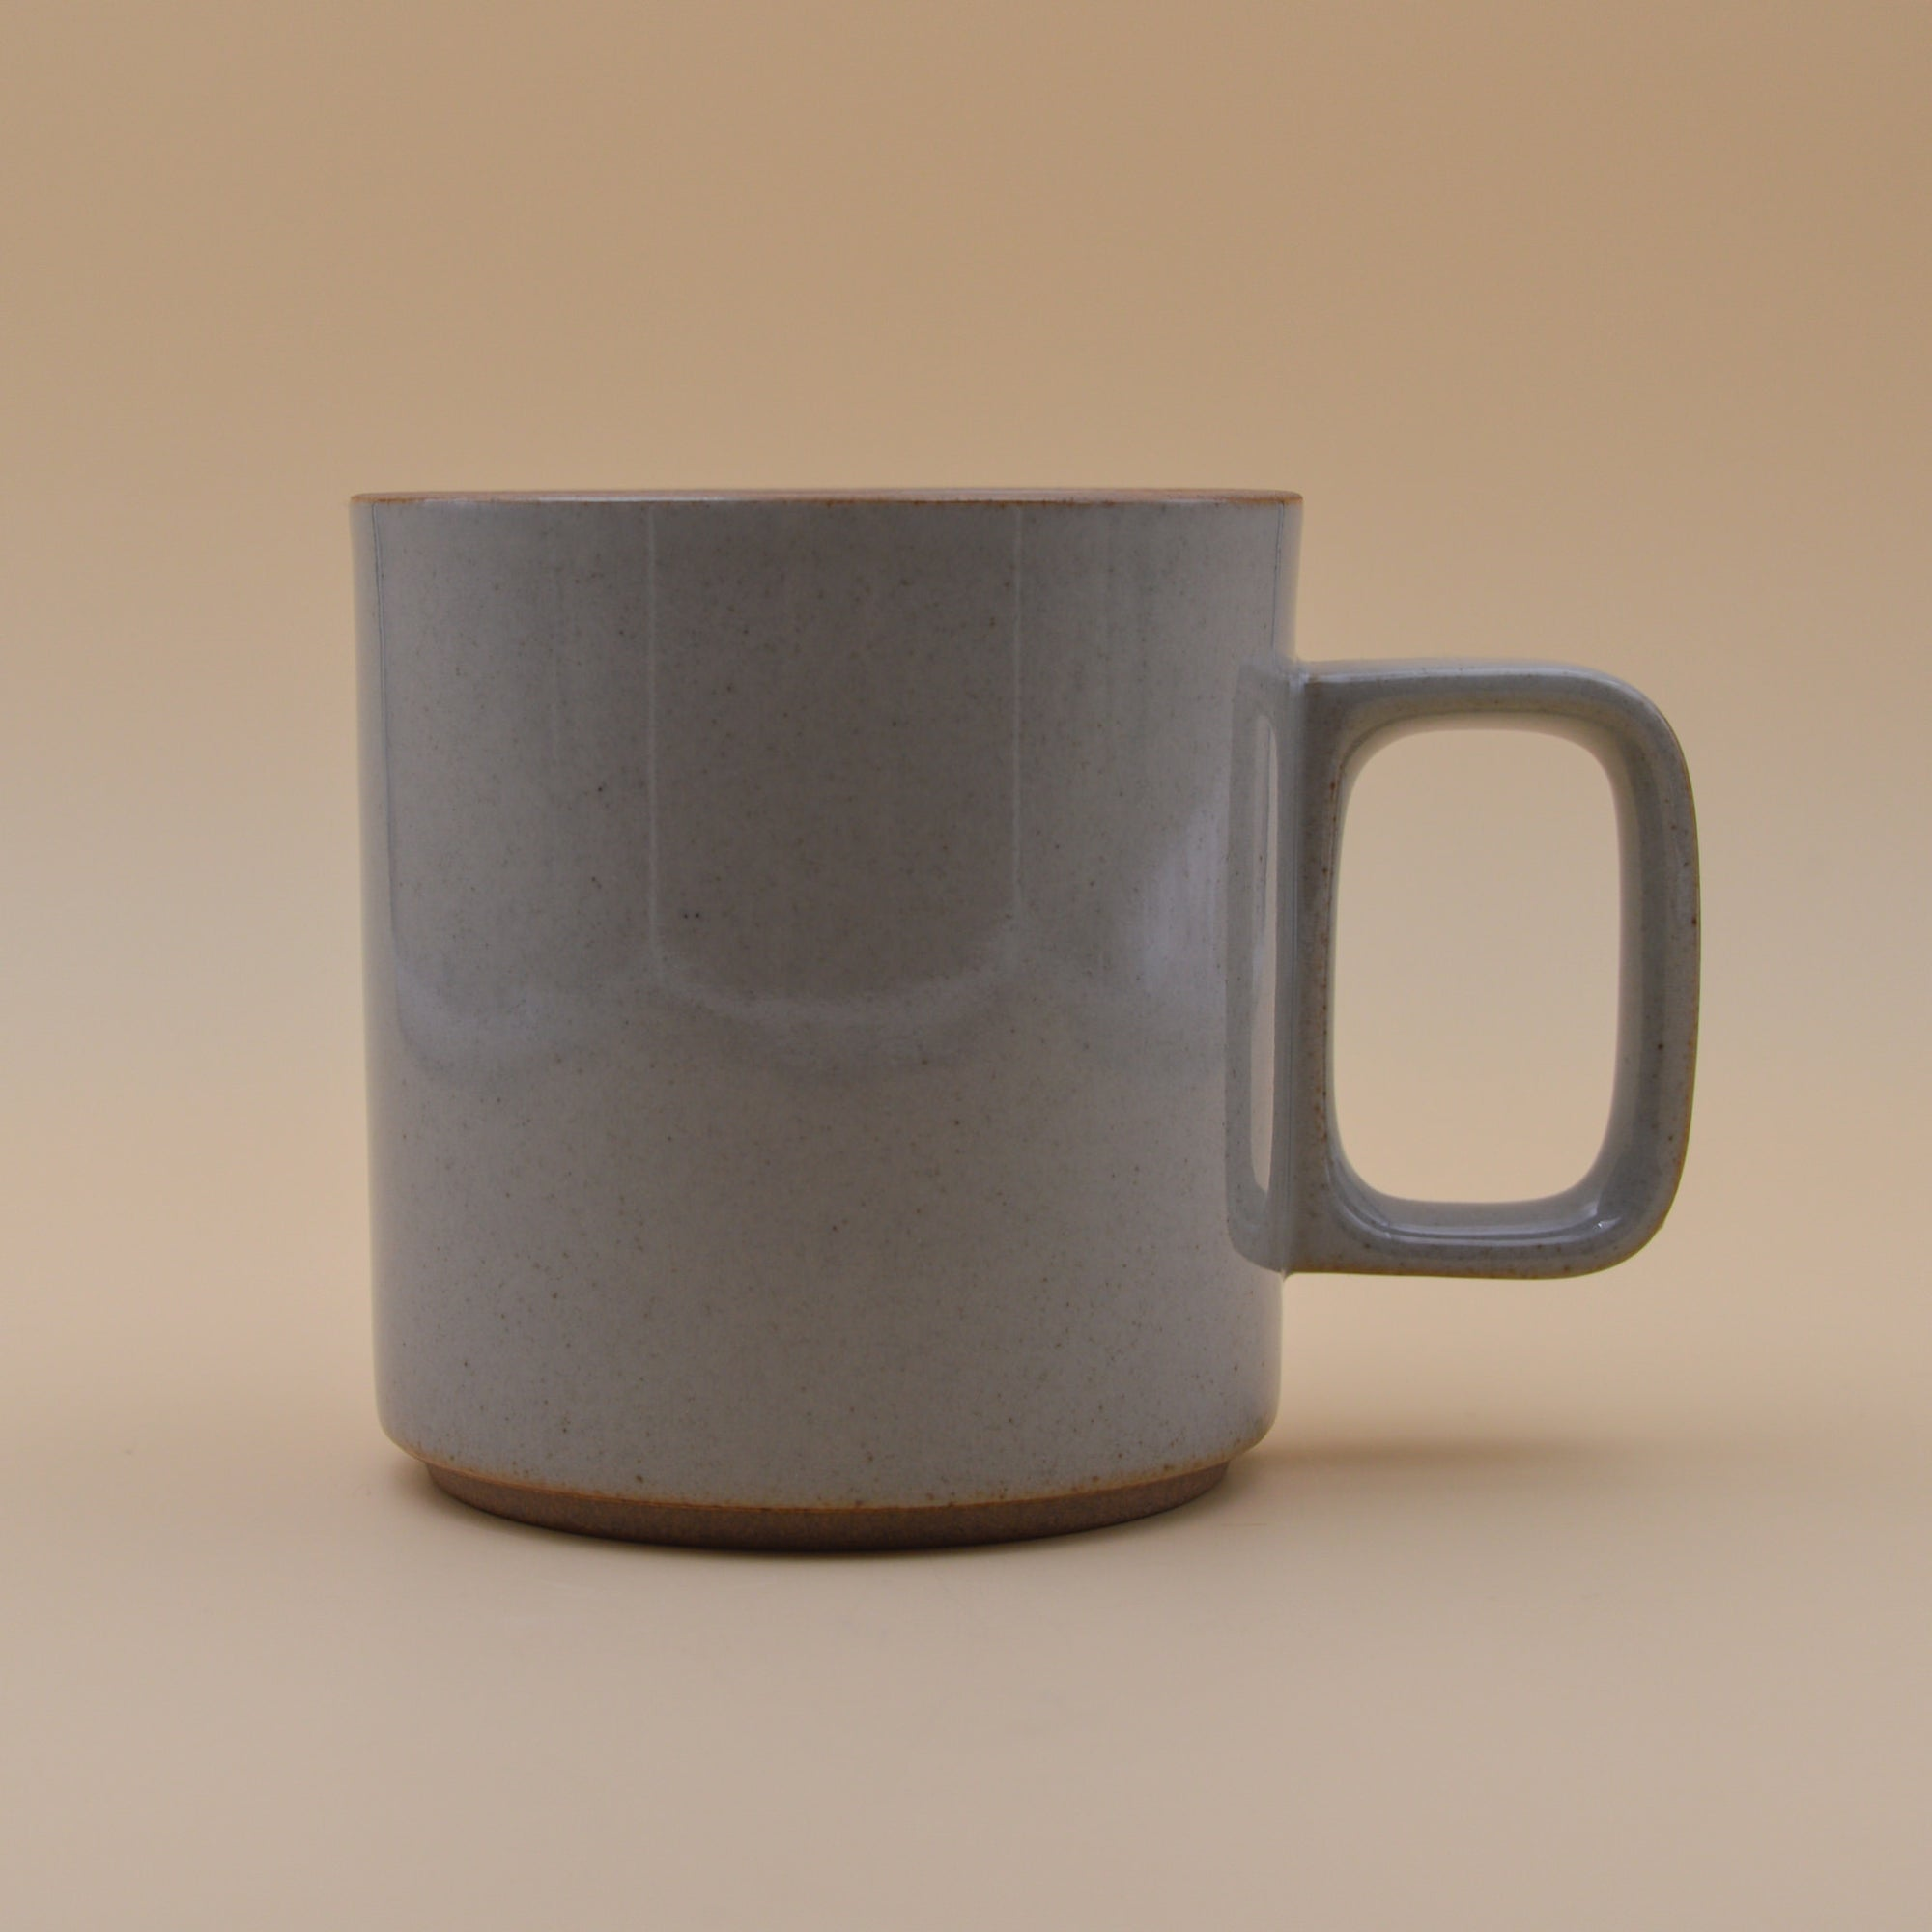 Hasami Porcelain Mug (gloss grey)